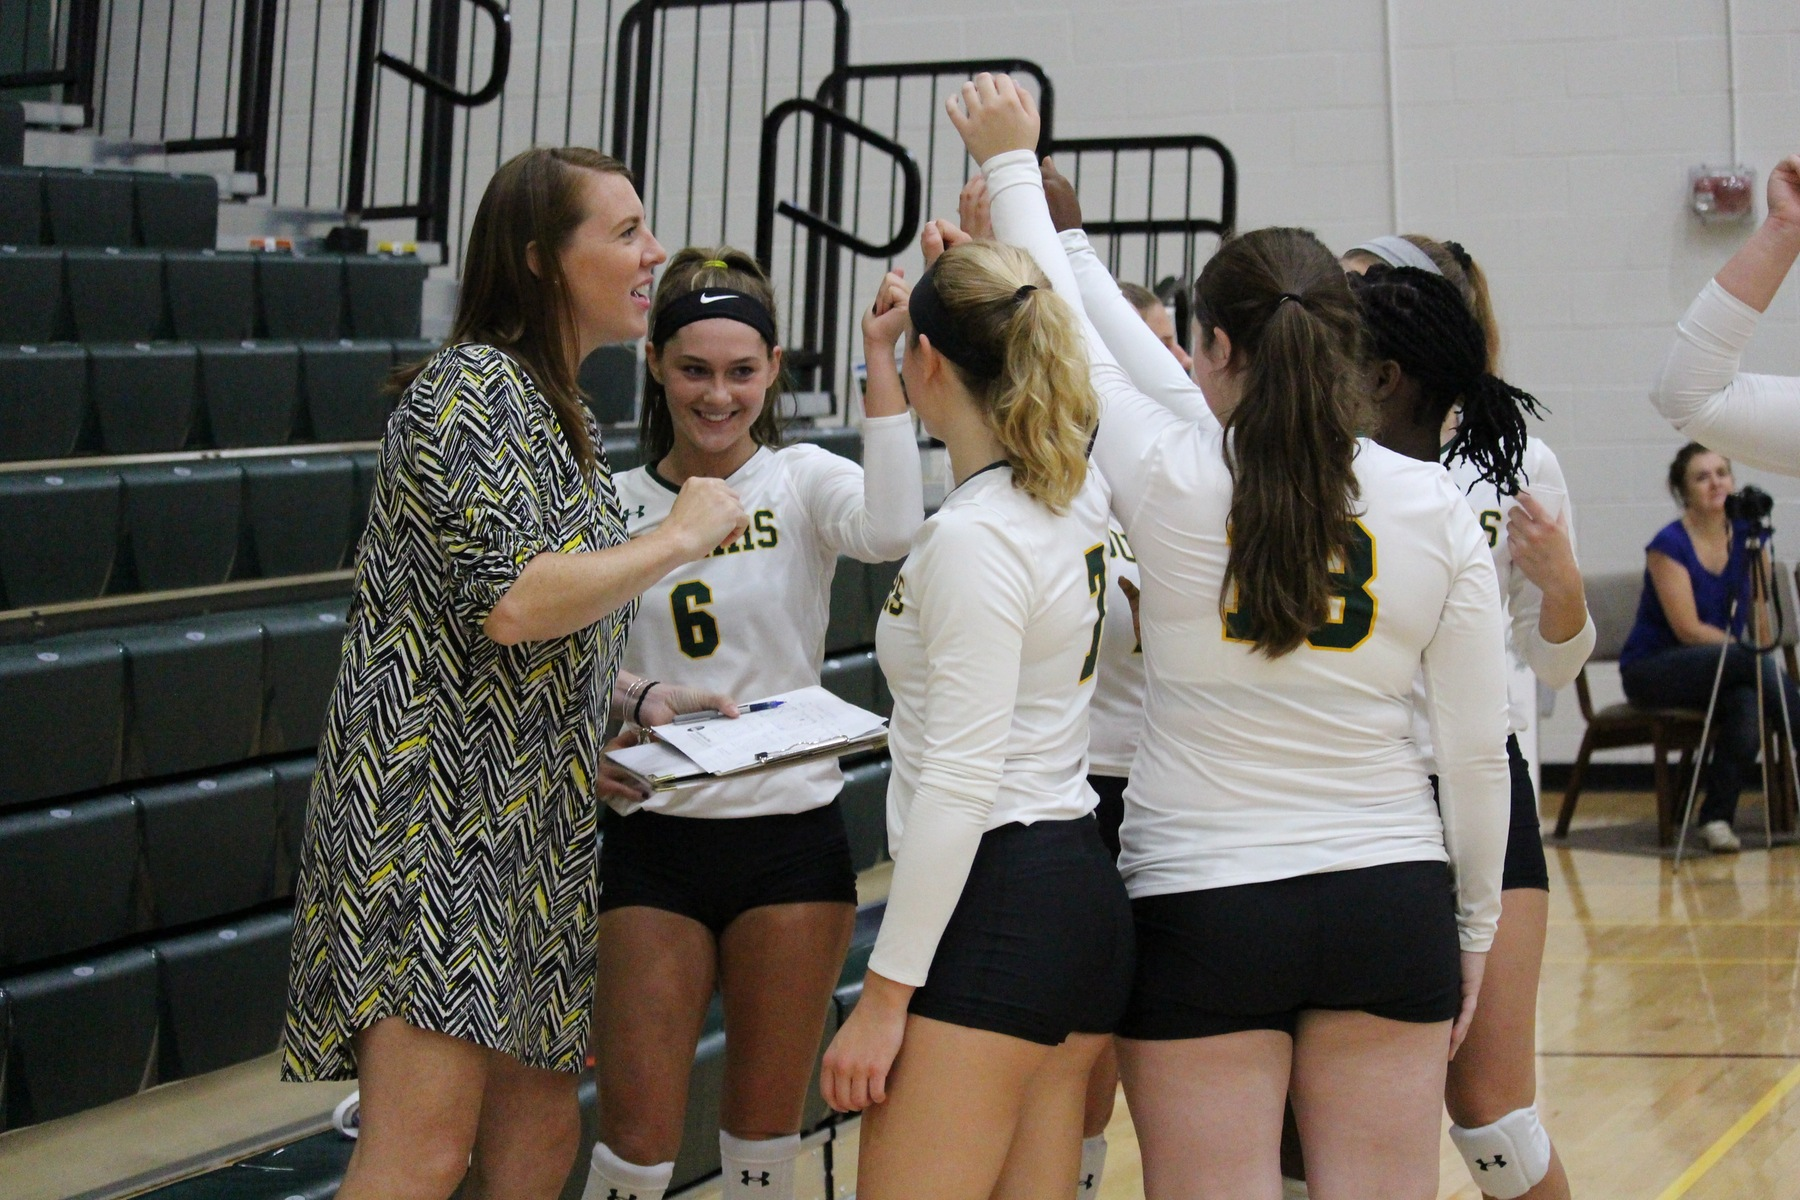 FCC Wins Five Set Thriller Over CCBC Essex